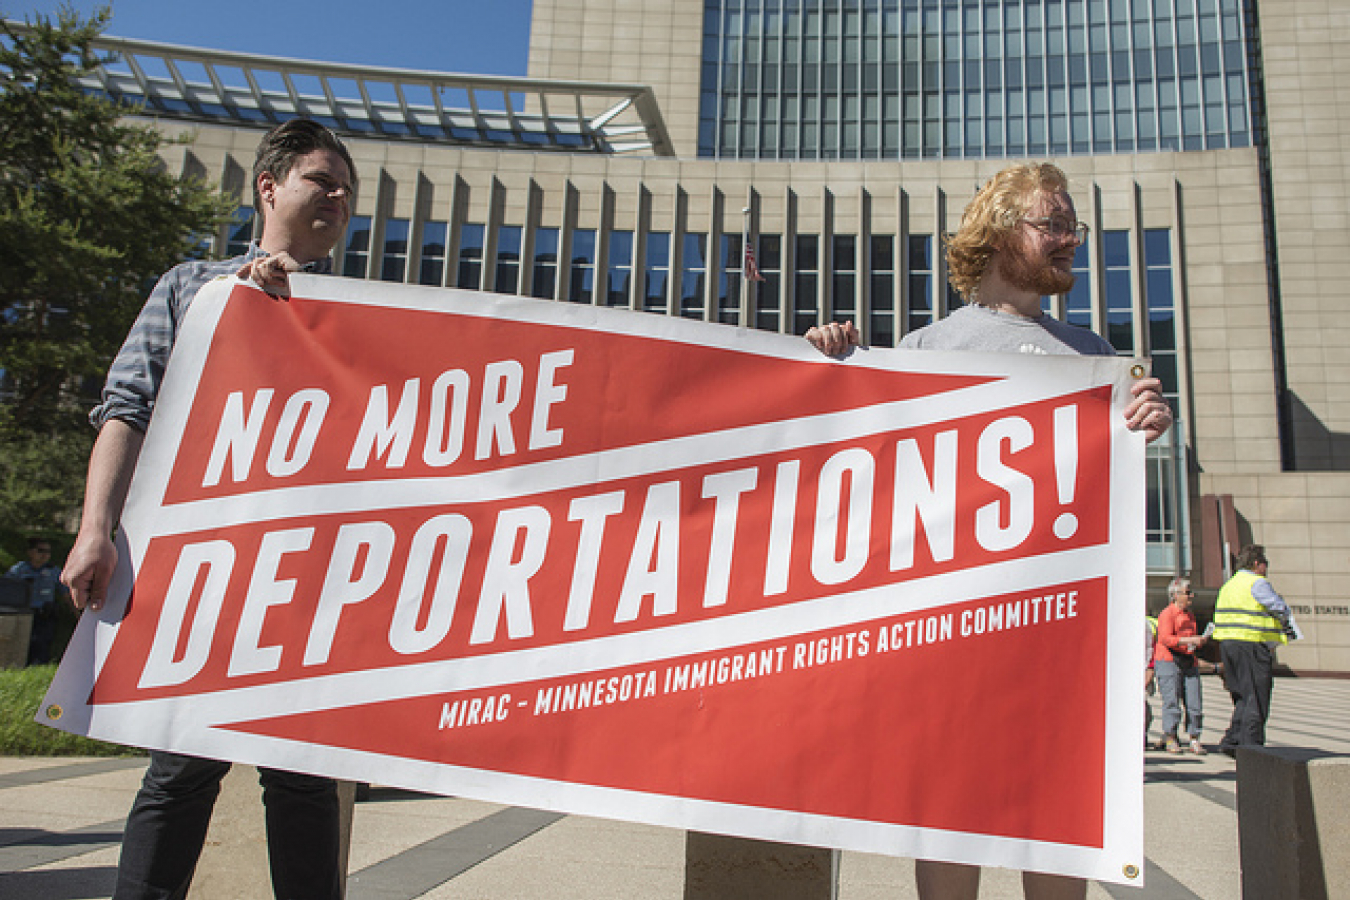 No more deportations